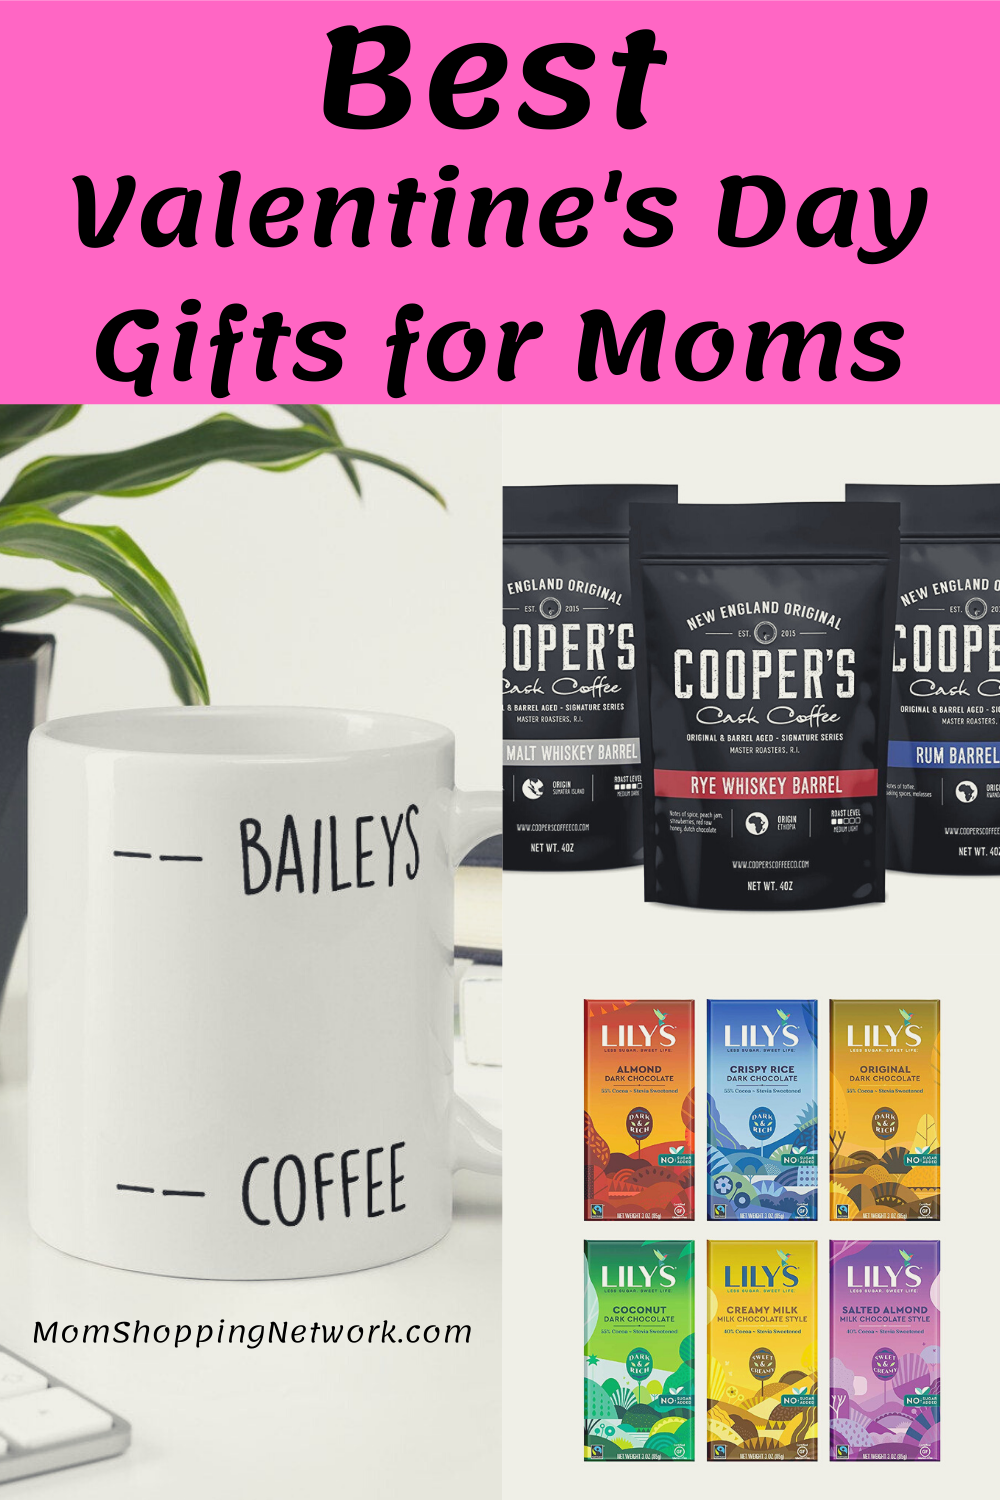 Best Valentines Day Gifts for Every Mom. #valentinesdaygifts #giftguideformoms #giftguide #valentinesdaygiftguide #momshoppingnetwork